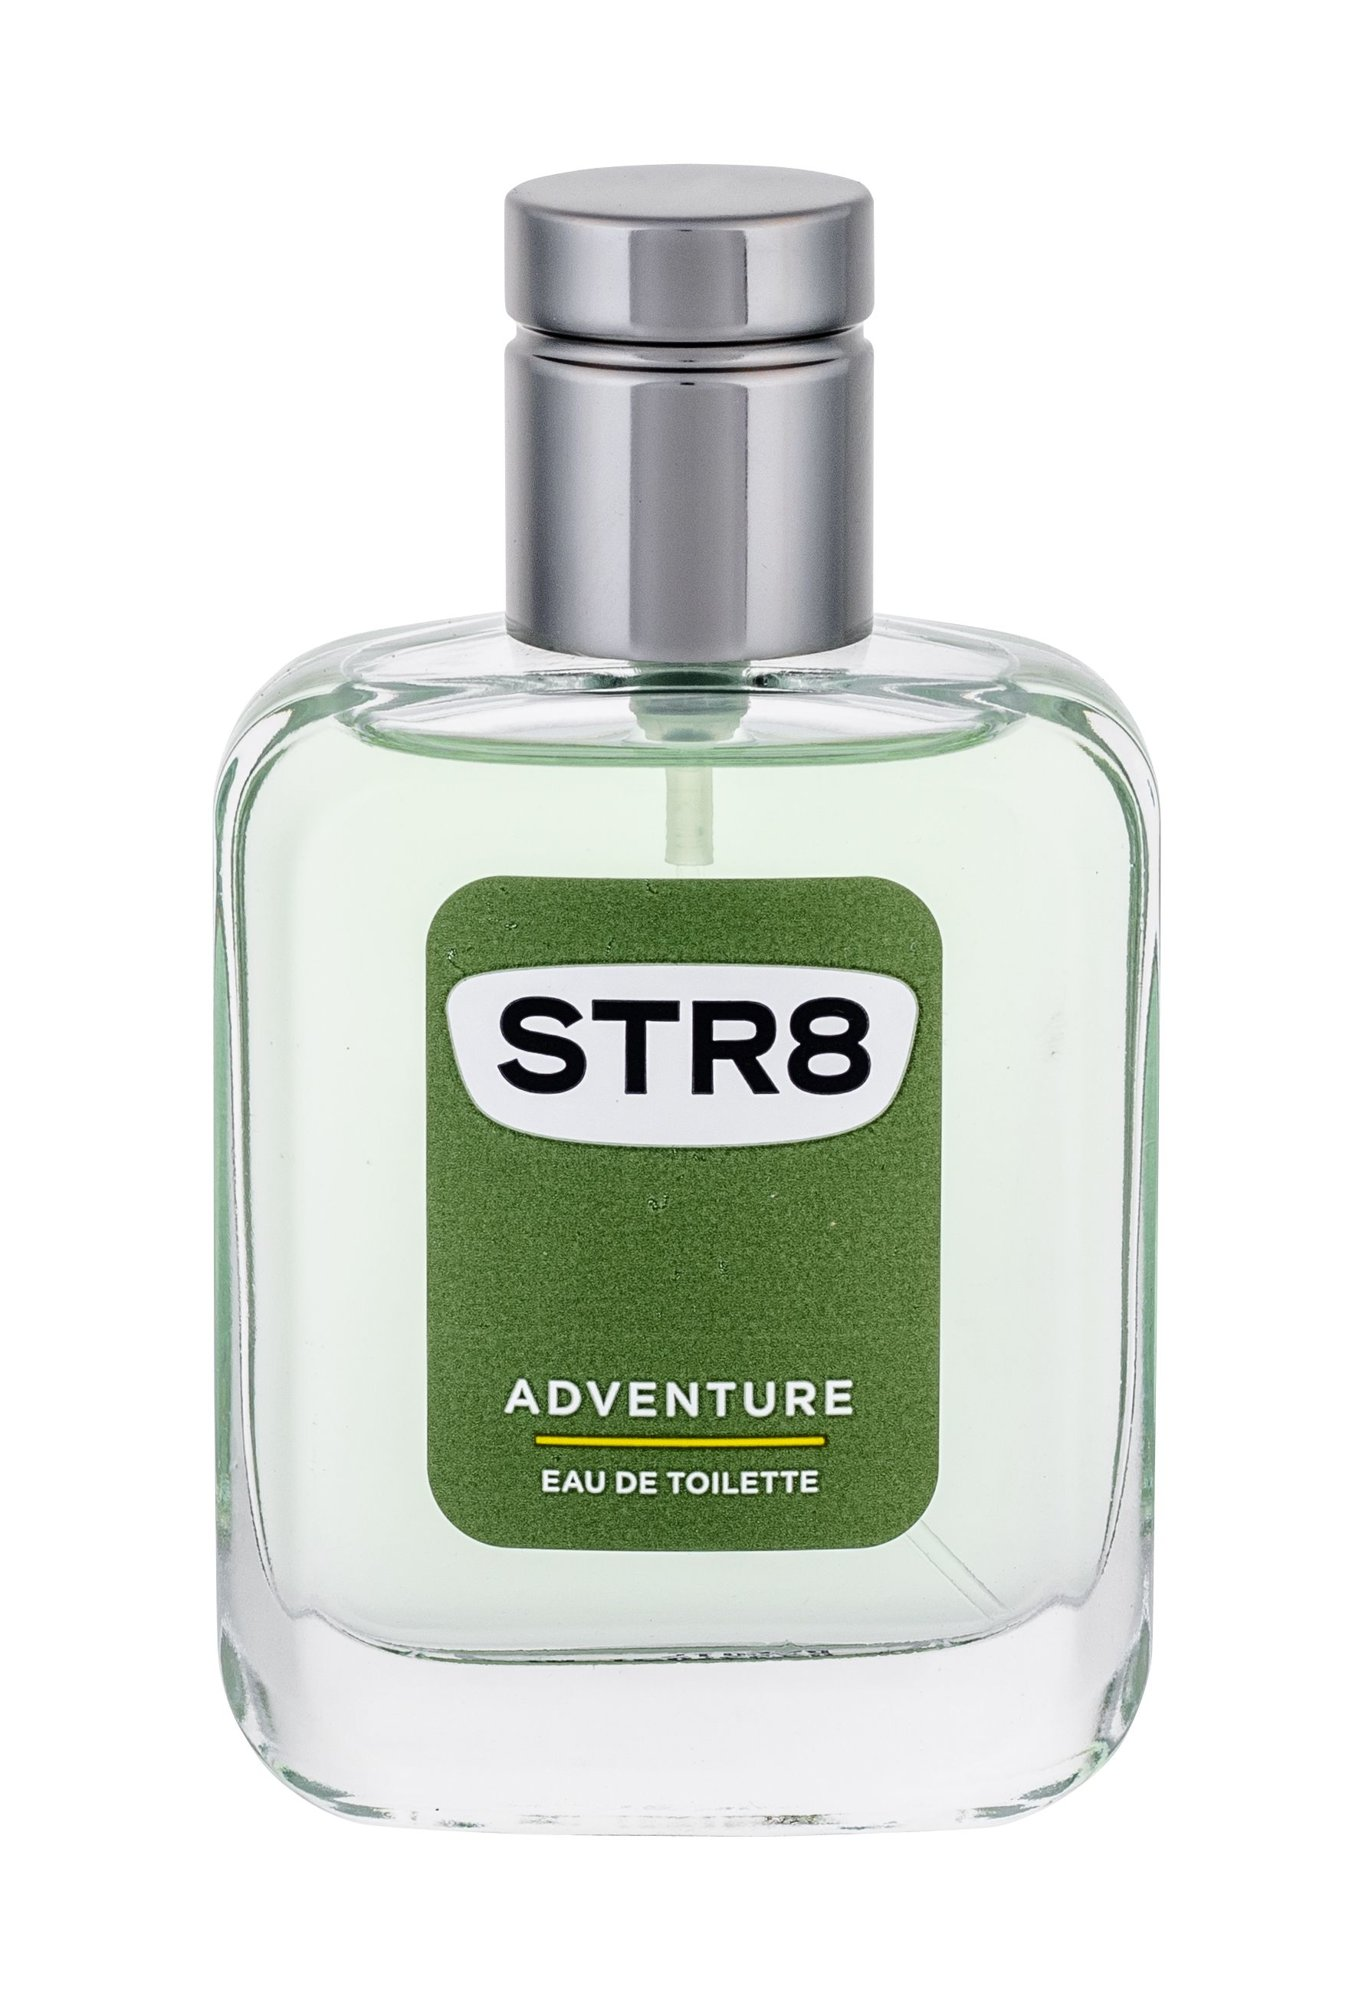 STR8 Adventure, edt 50ml